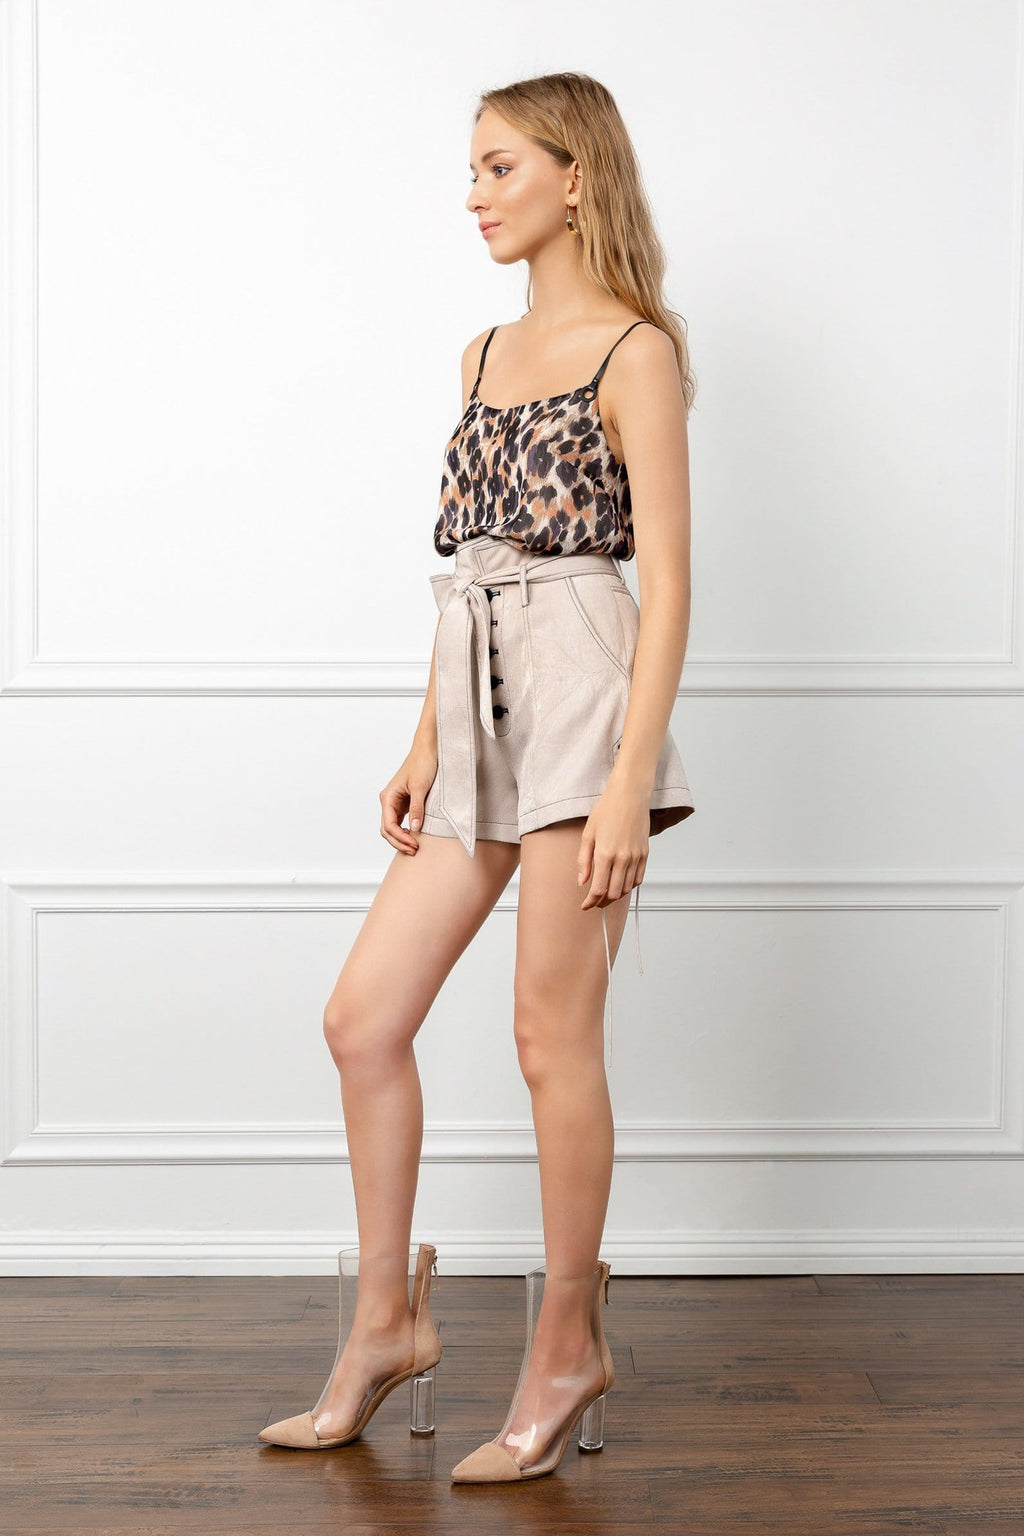 Profile of model full body shot wearing beige shorts and leopard printed top